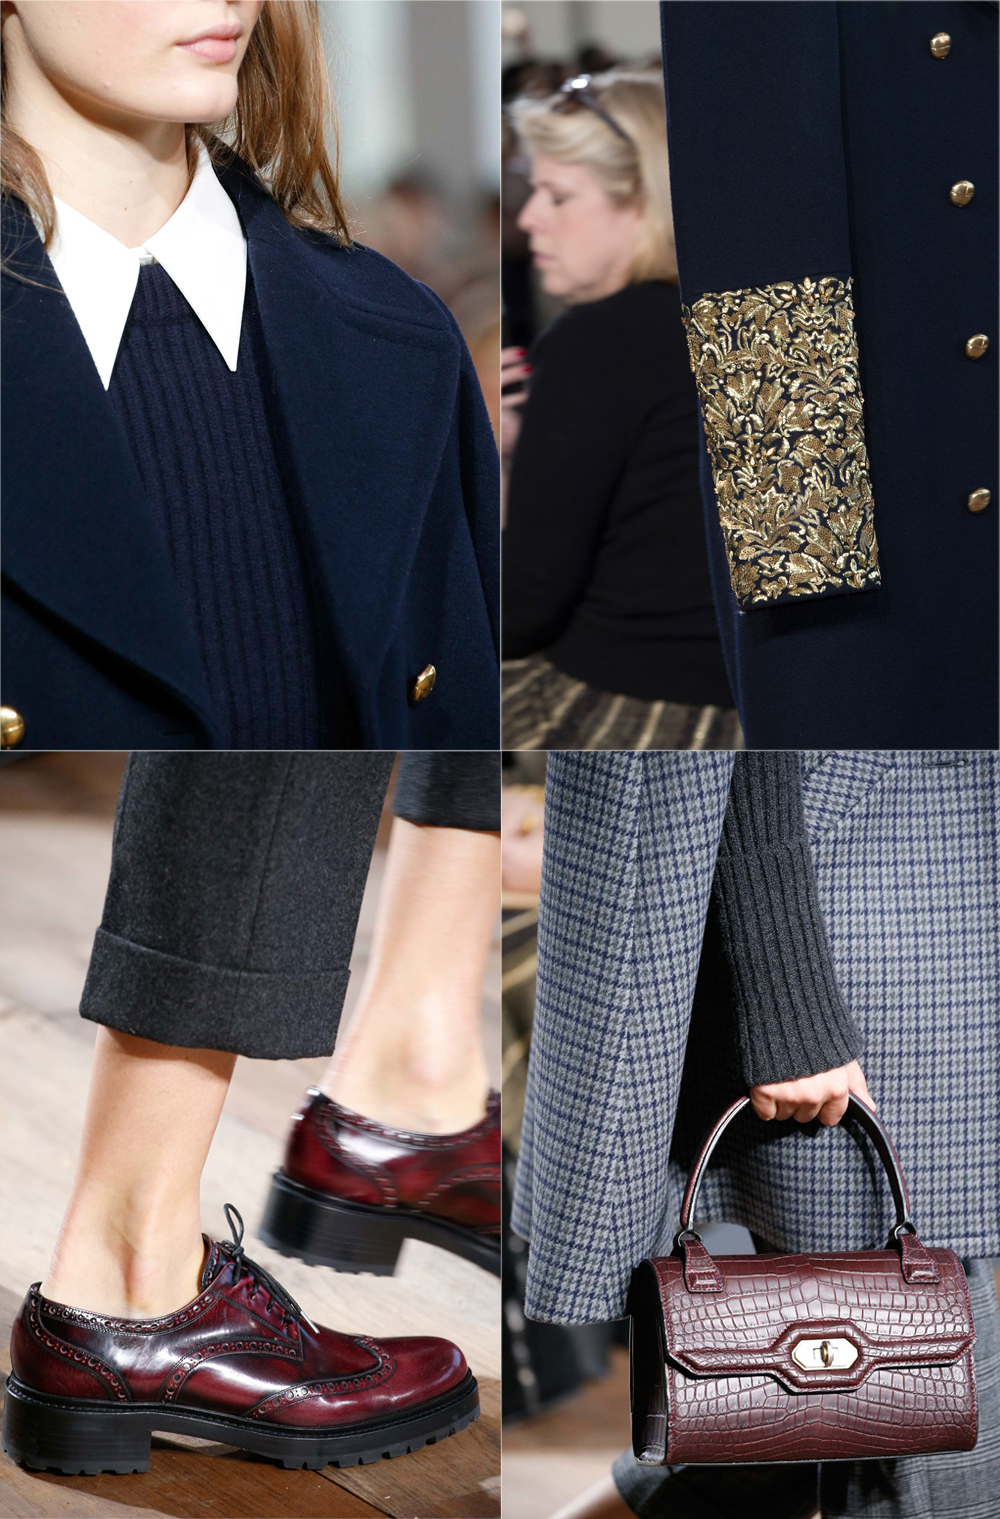 Designer look for less inspired by Michael Kors FW 2015 via www.fashionedbylove.co.uk british fashion blog